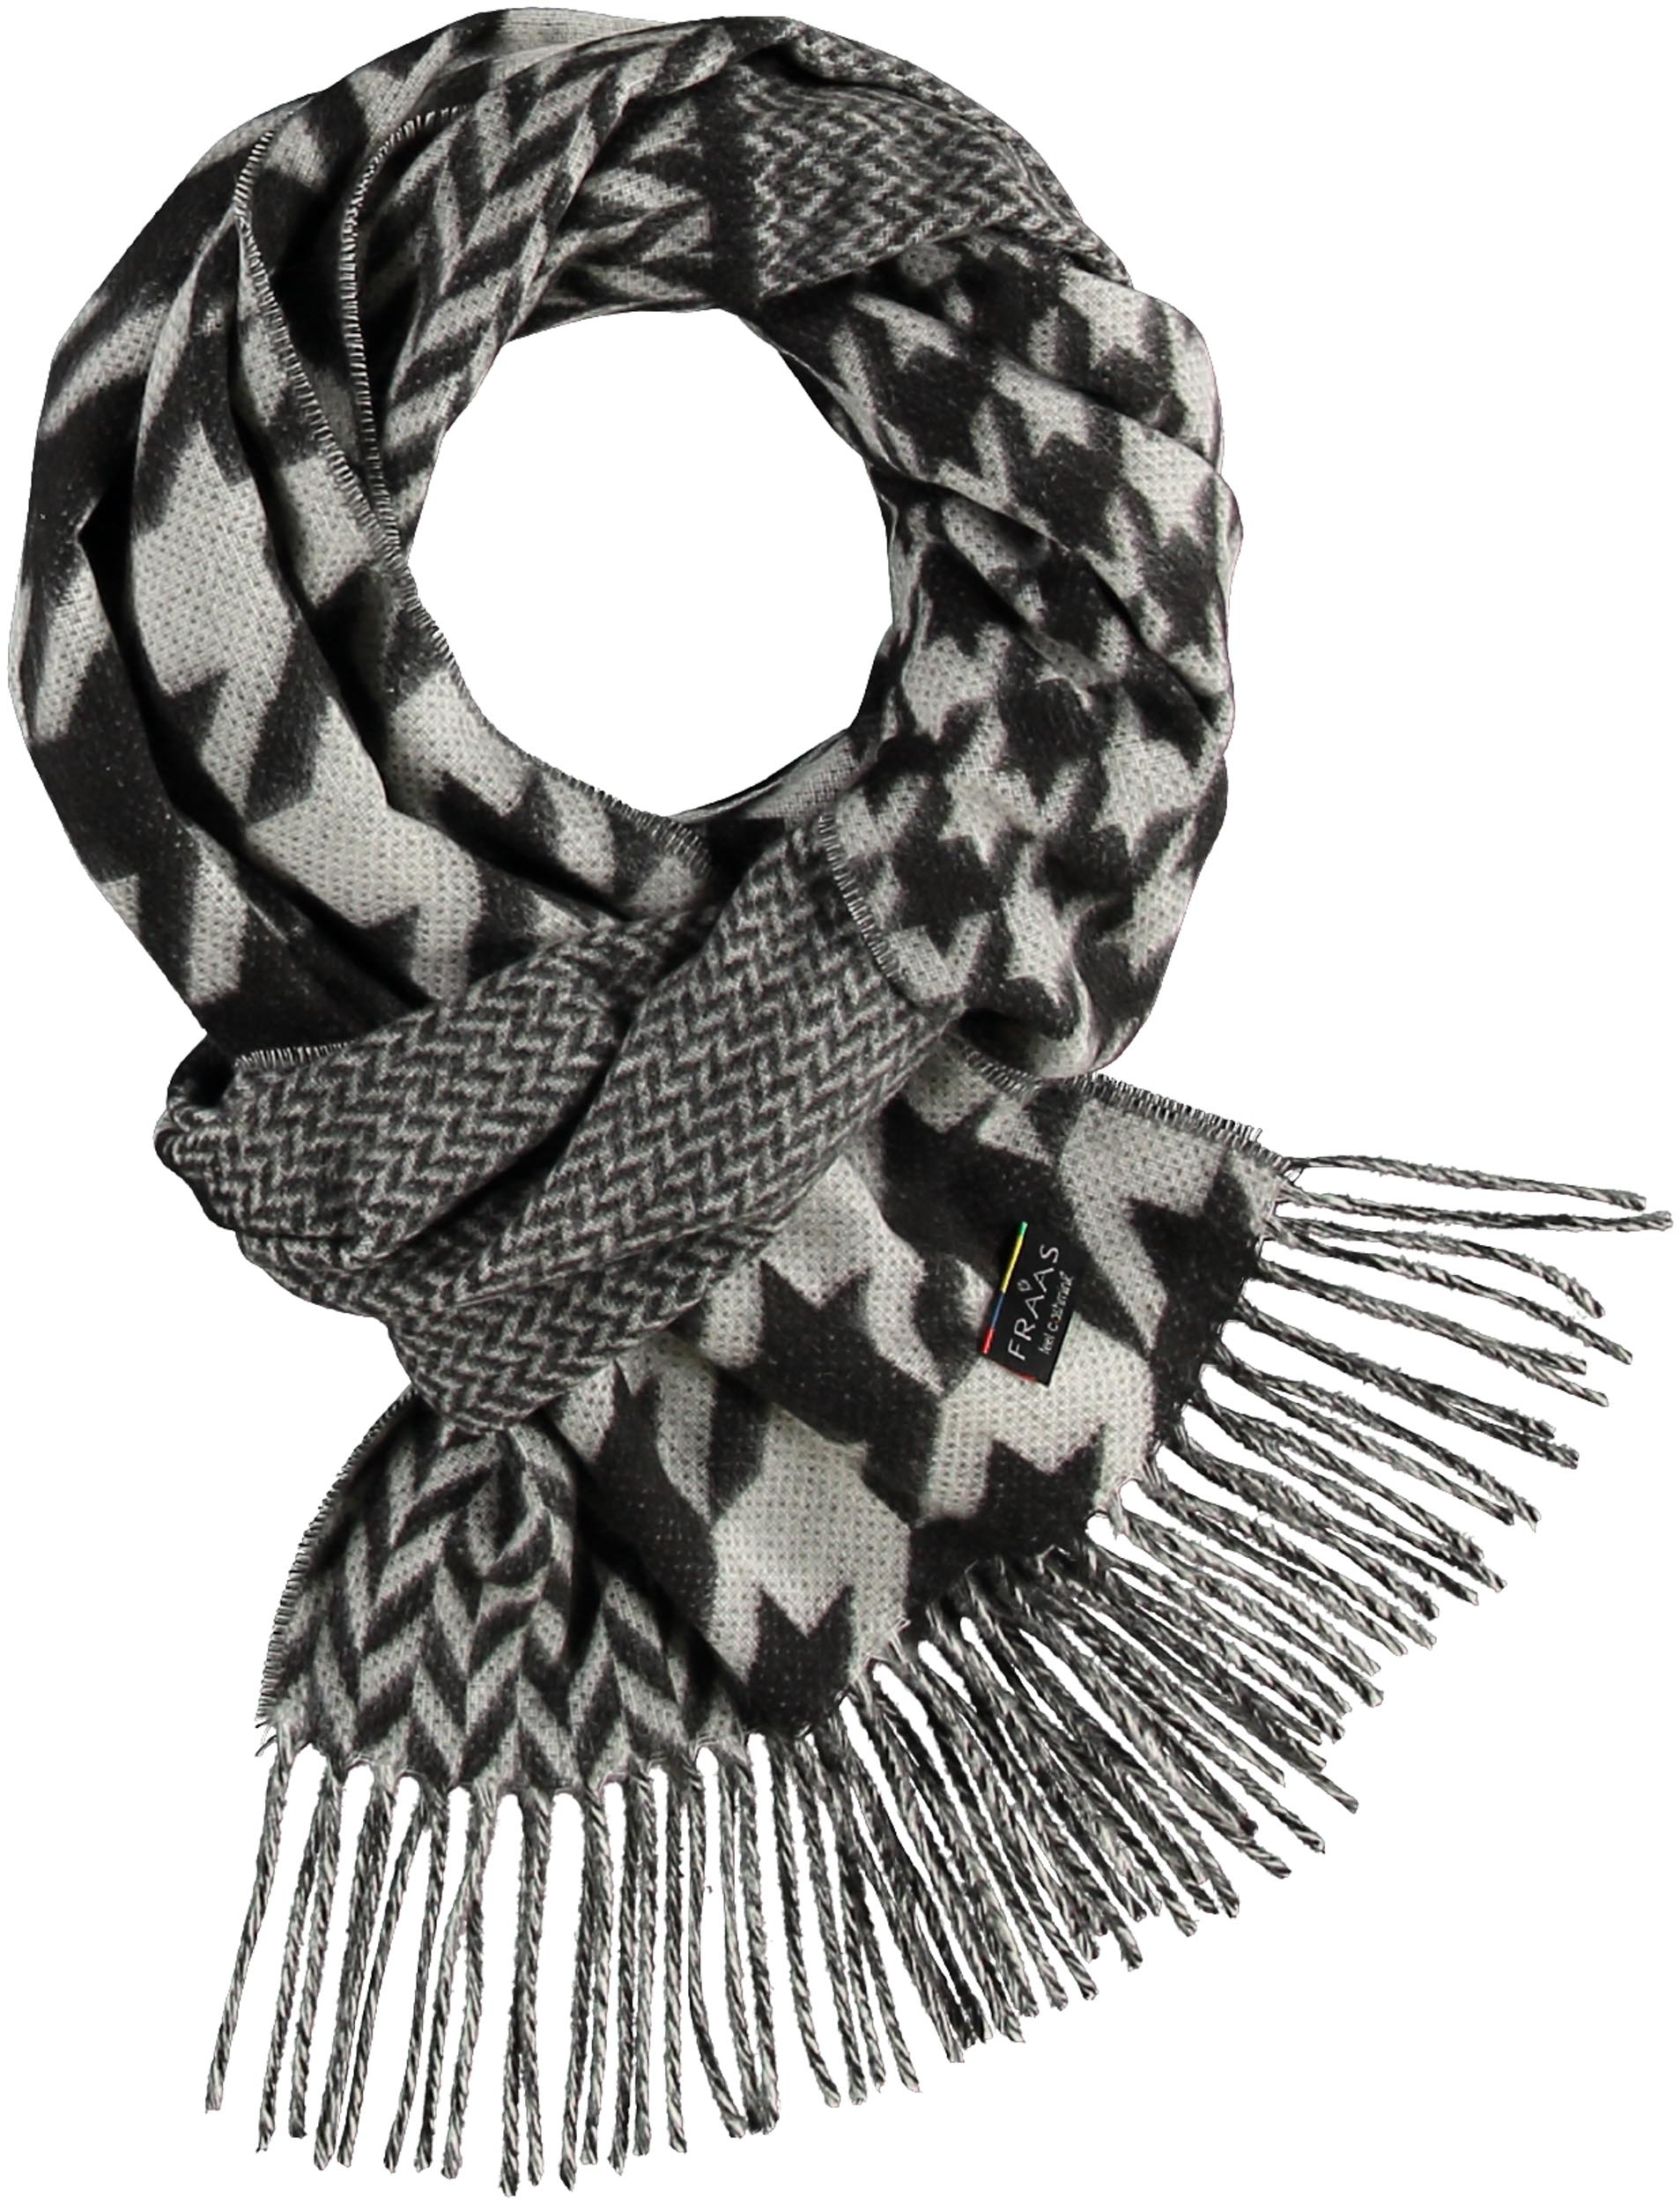 Christian Paul by sidonio's Patchwork Houndstooth Woven Cashmink® Scarf 625270